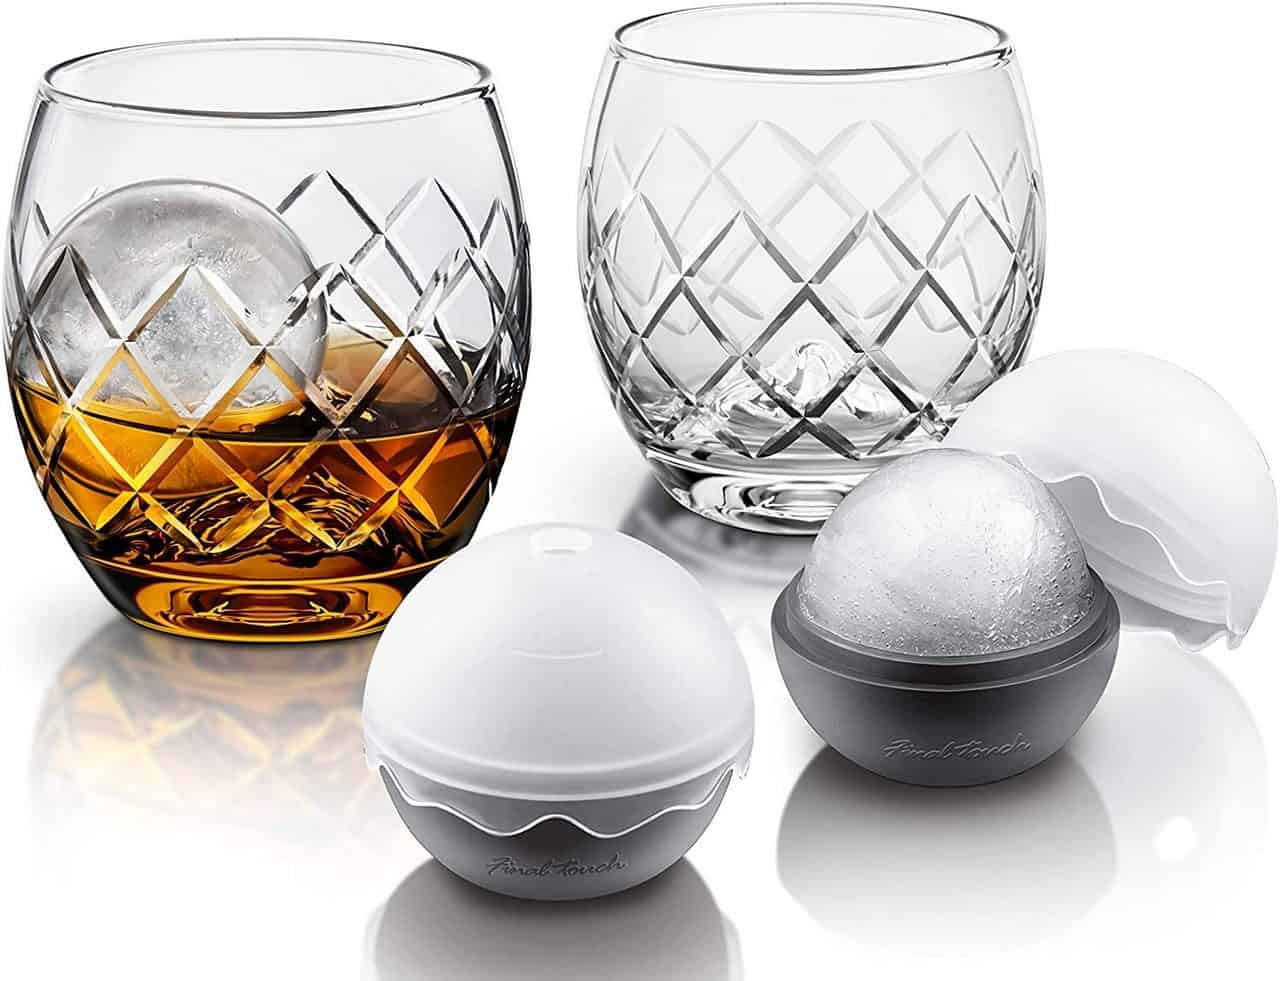 Product Specialties Inc. Final Touch Rock Glass with Ice Ball Mould